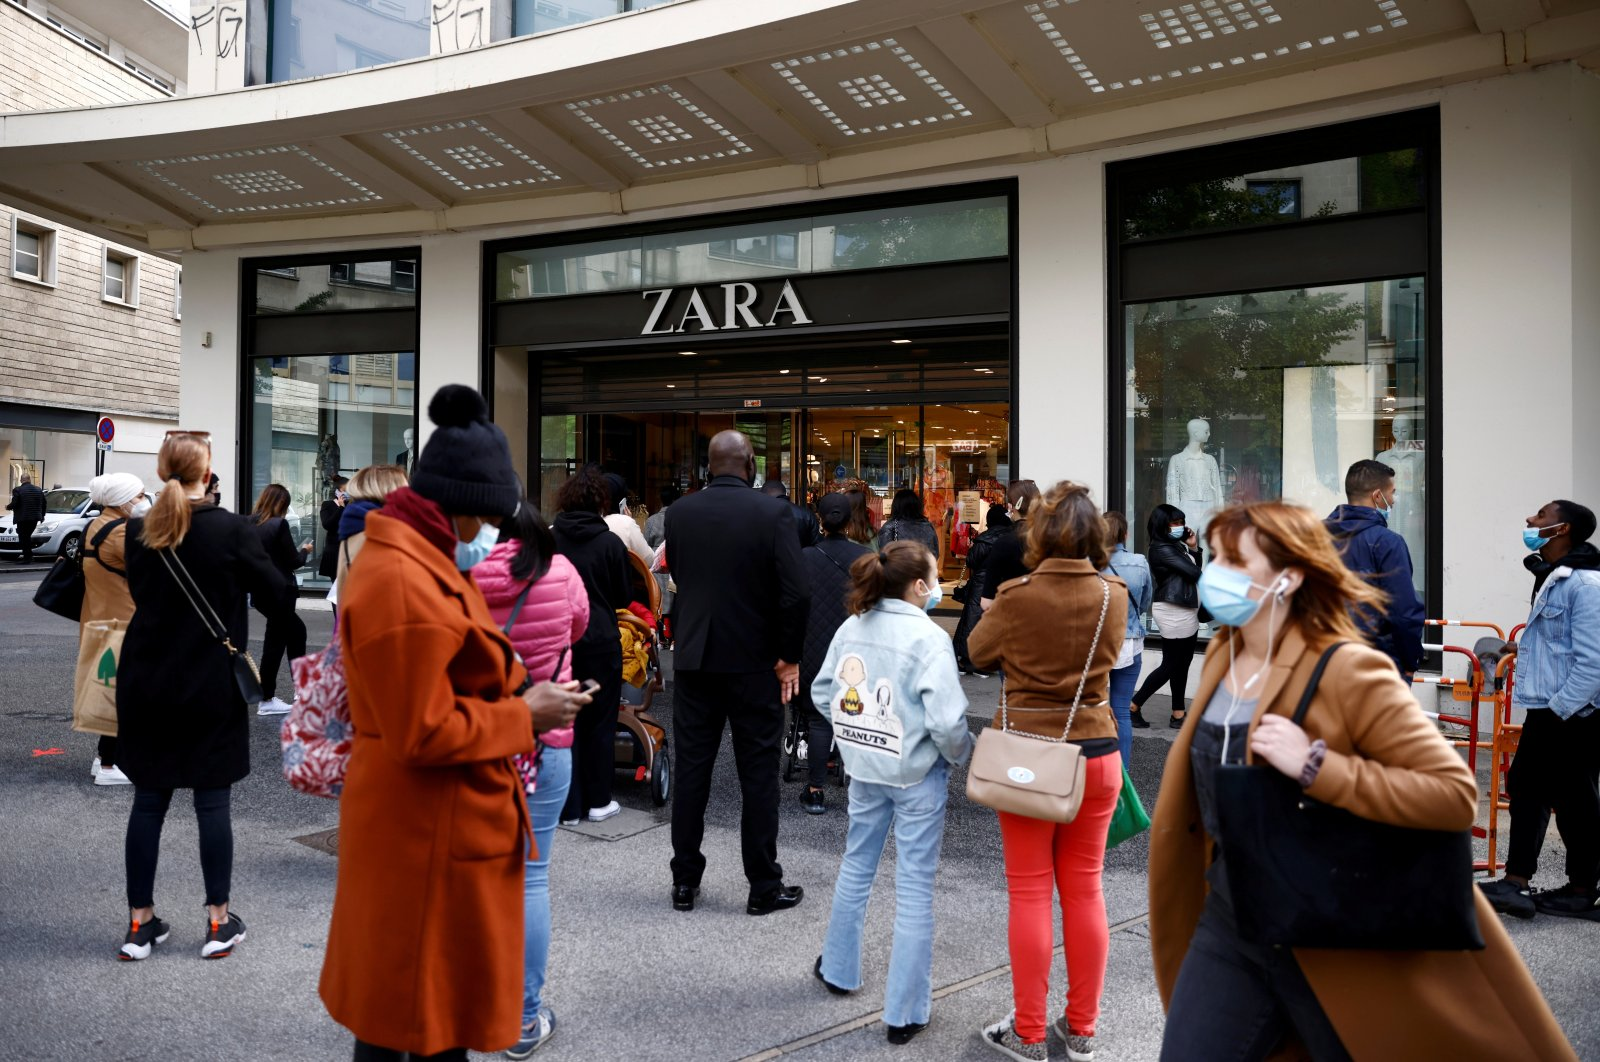 Customers stand in front of a Zara shop as non-essential businesses reopen after closing down for months, Nantes, France, May 19, 2021. (Reuters Photo)